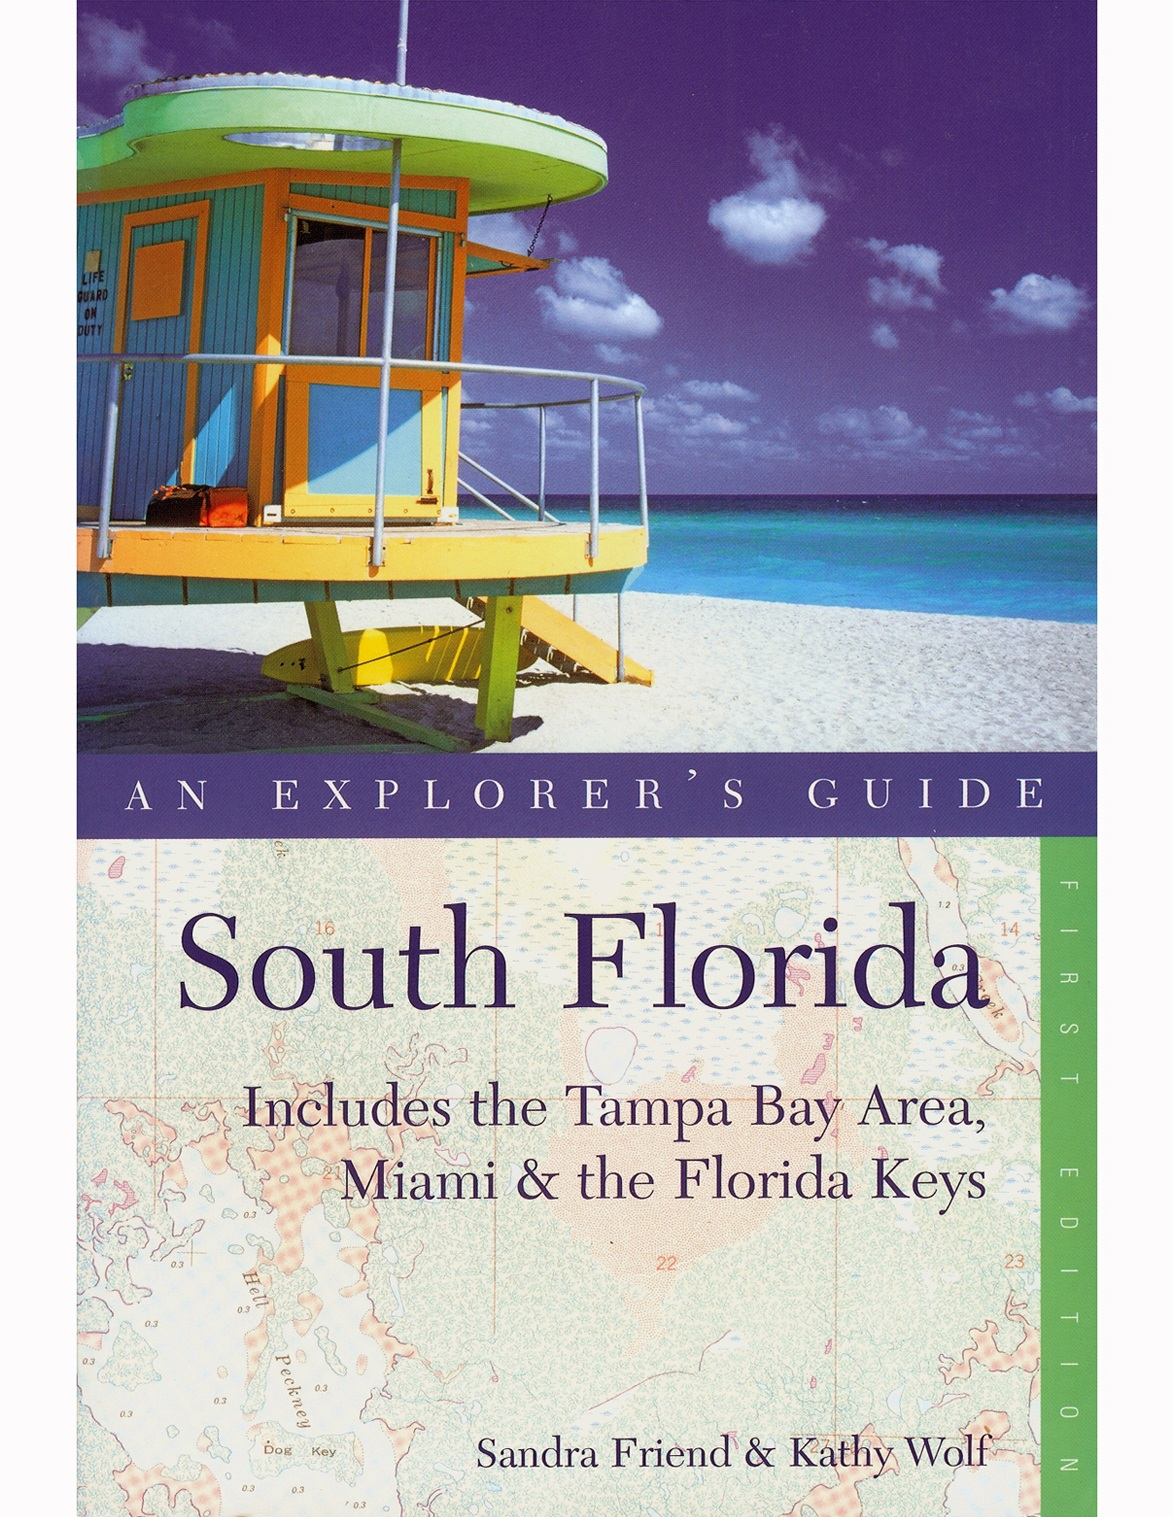 AN EXPLORER'S GUIDE: SOUTH FLORIDA, 2008